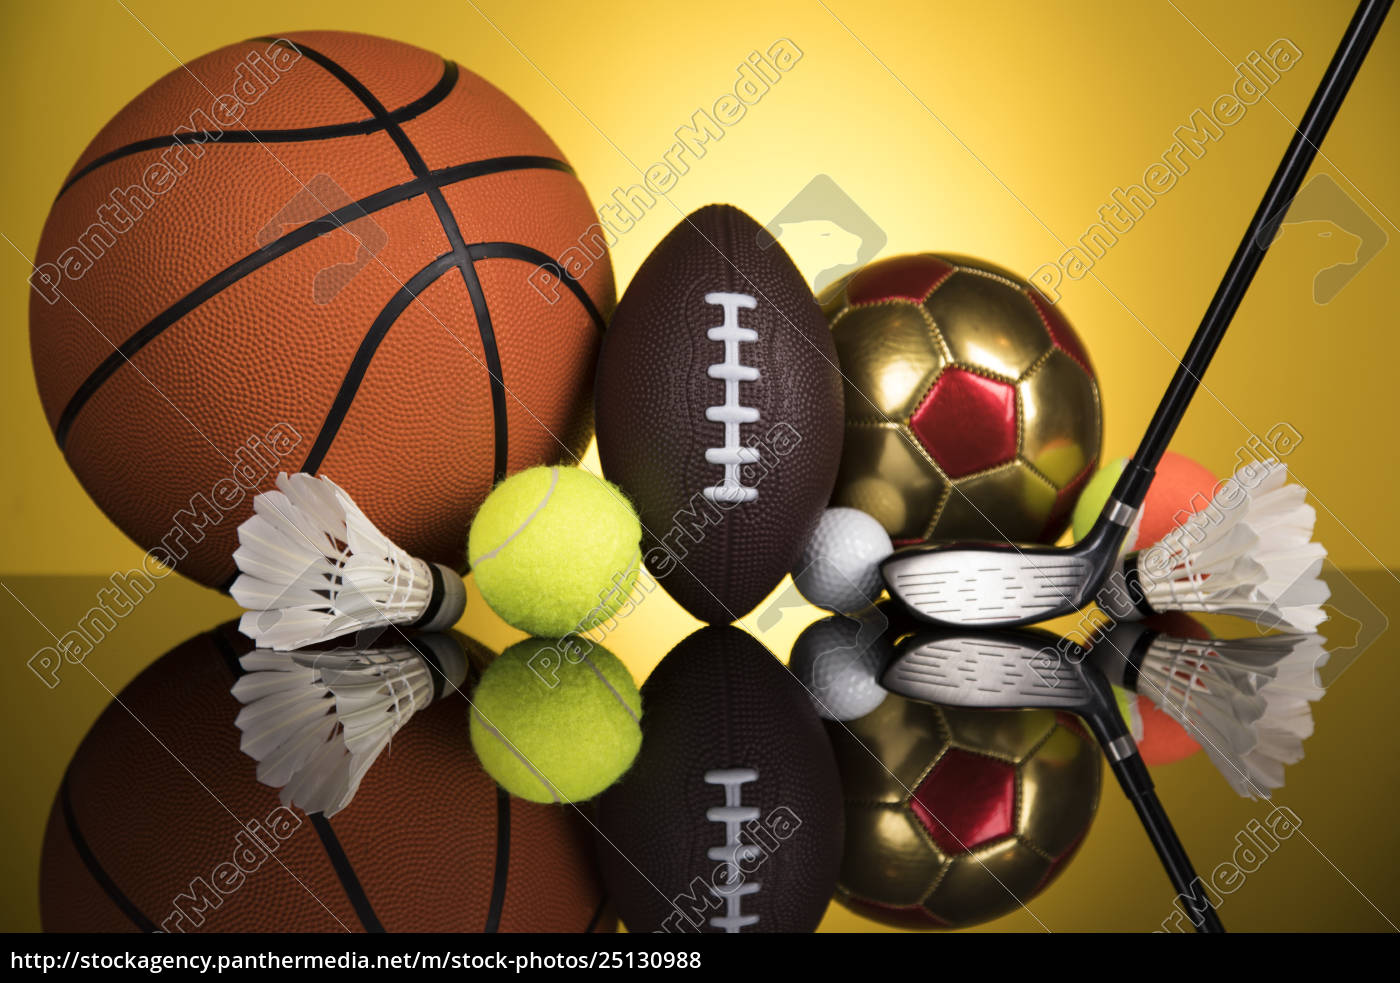 group, of, sports, equipment - 25130988